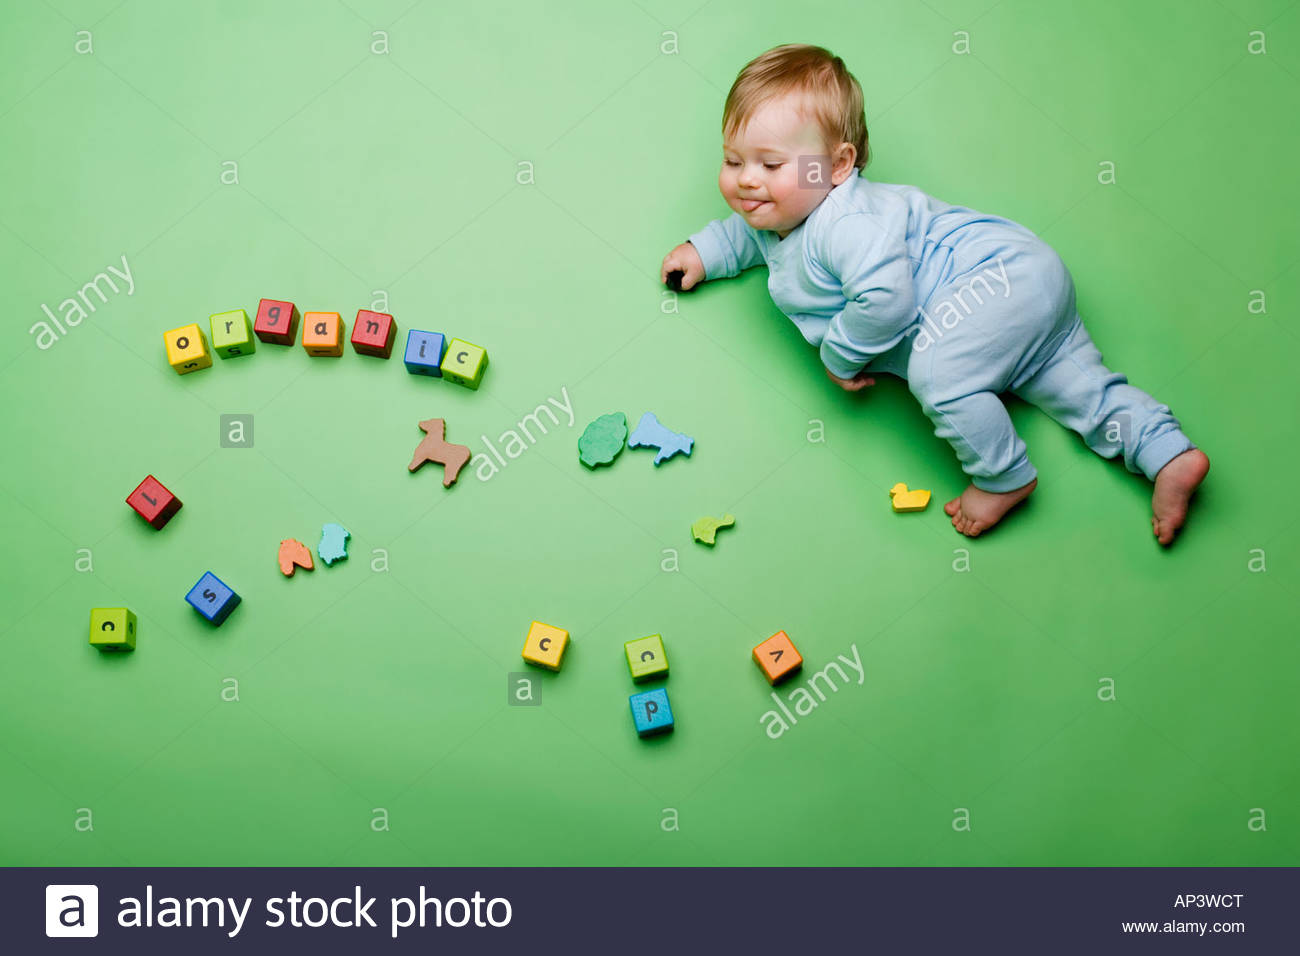 Baby with building blocks spelling organic - Stock Image